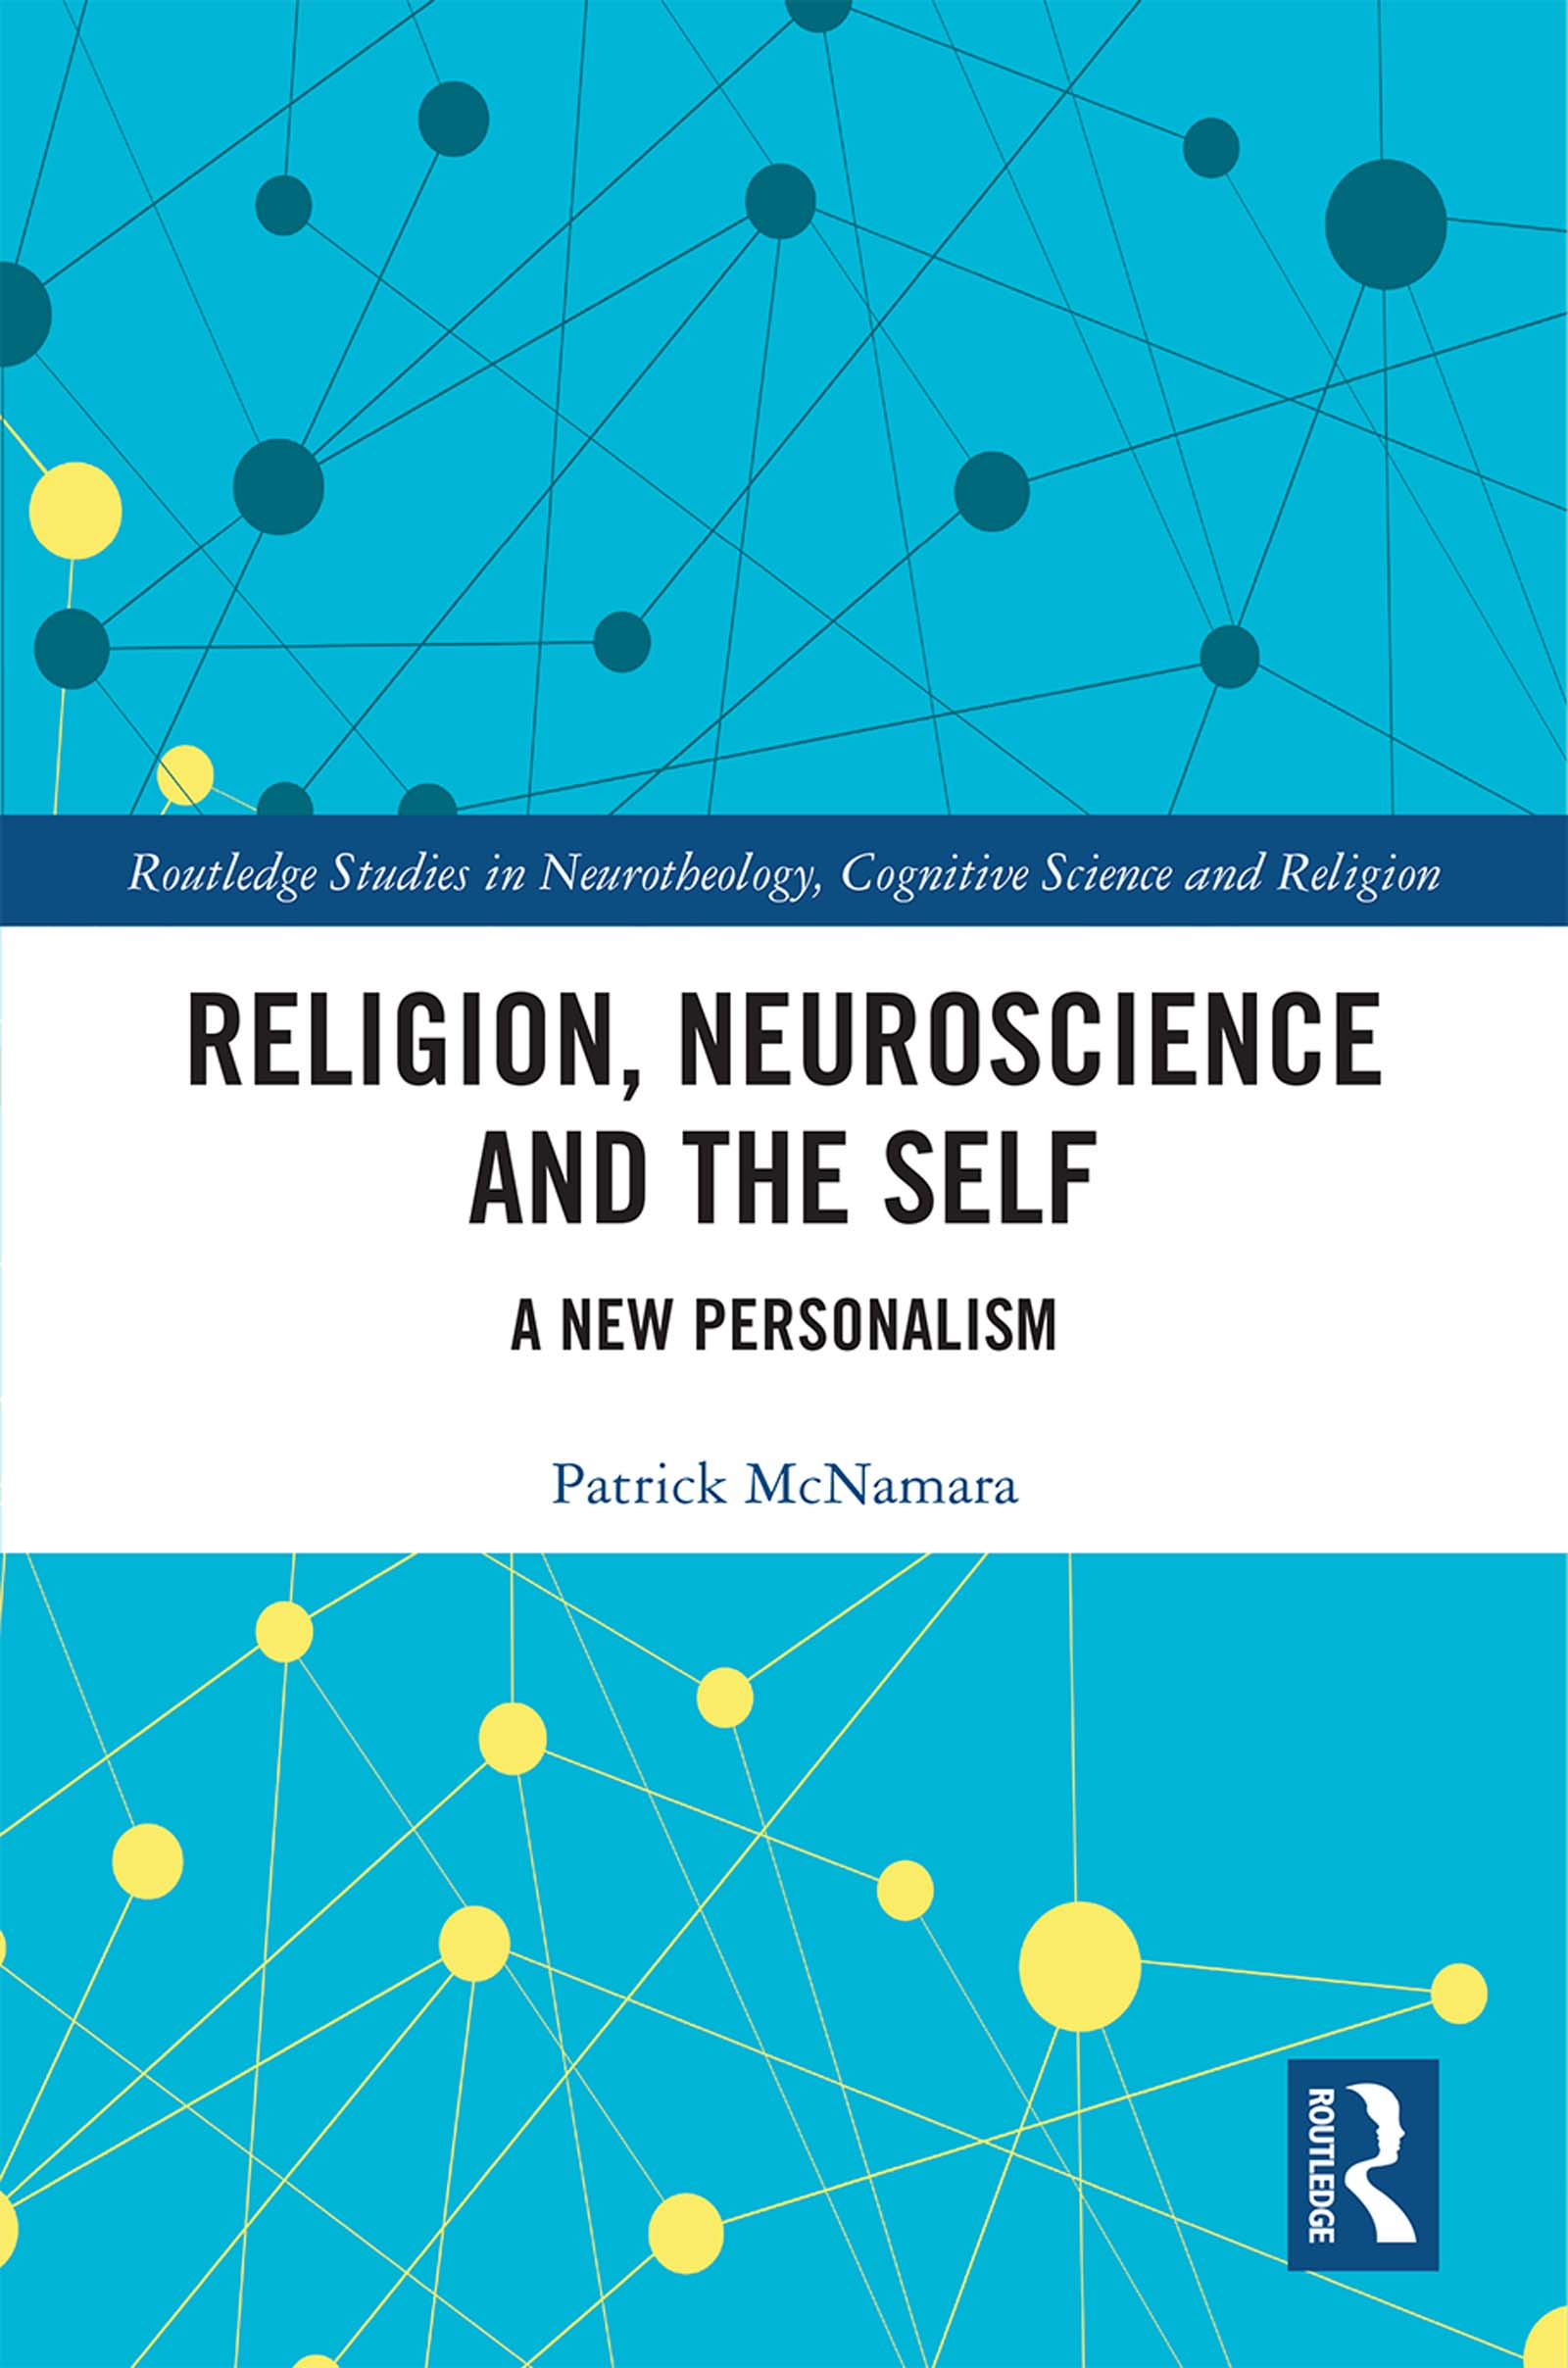 Religion, Neuroscience and the Self: A New Personalism book cover